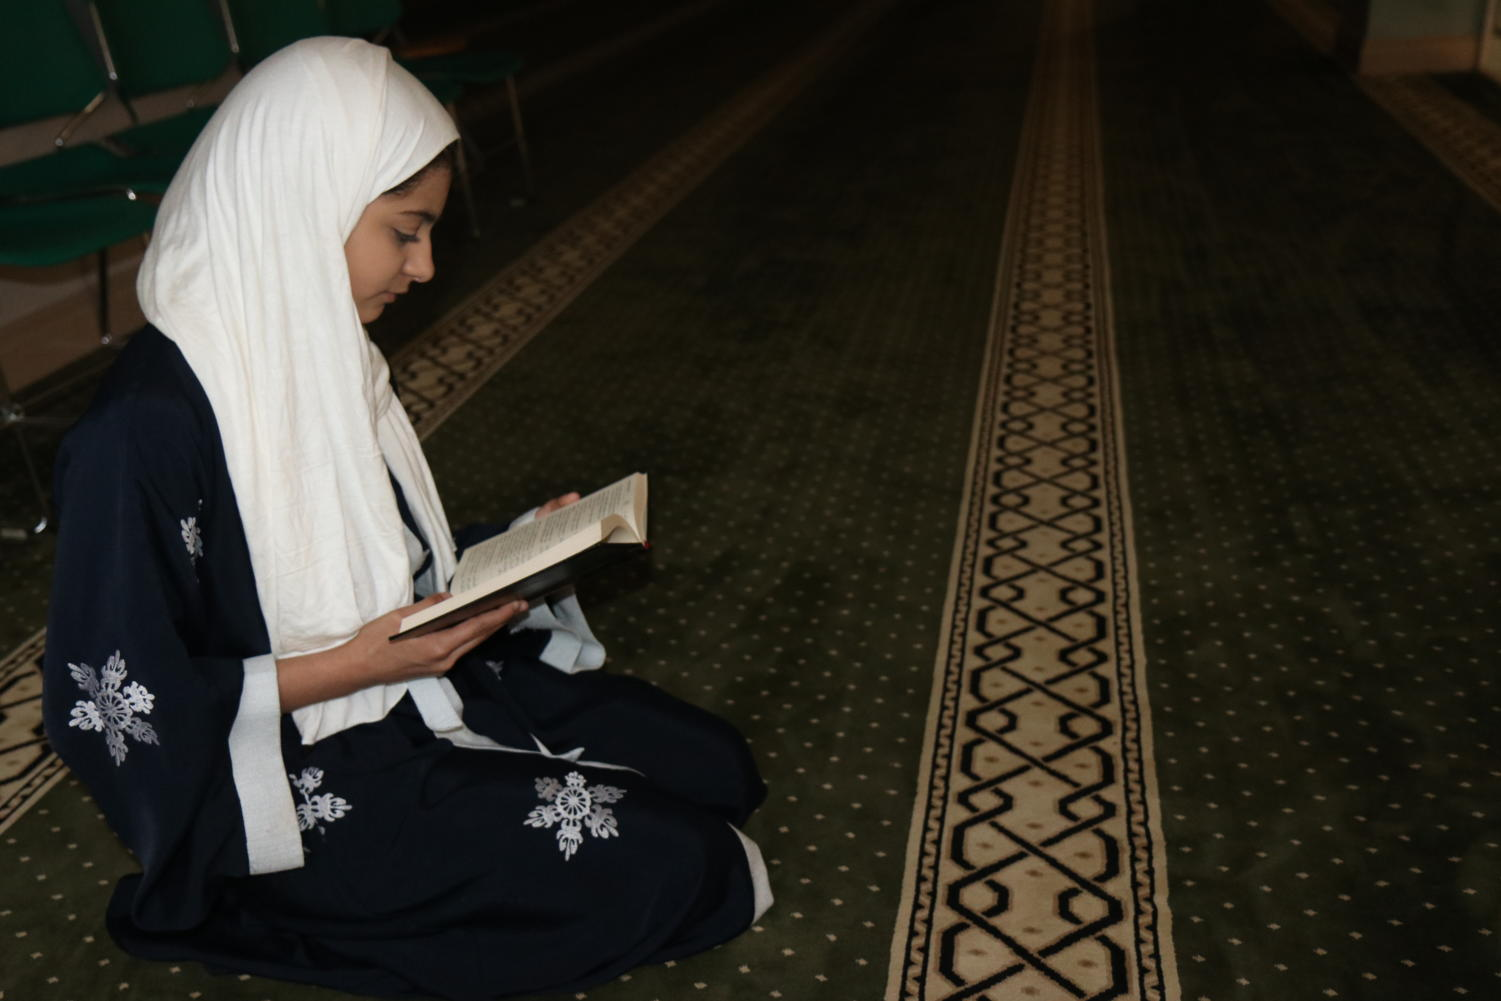 Lana Megdad, sophomore, reads the Quran at the Dar Ul-Islam mosque.